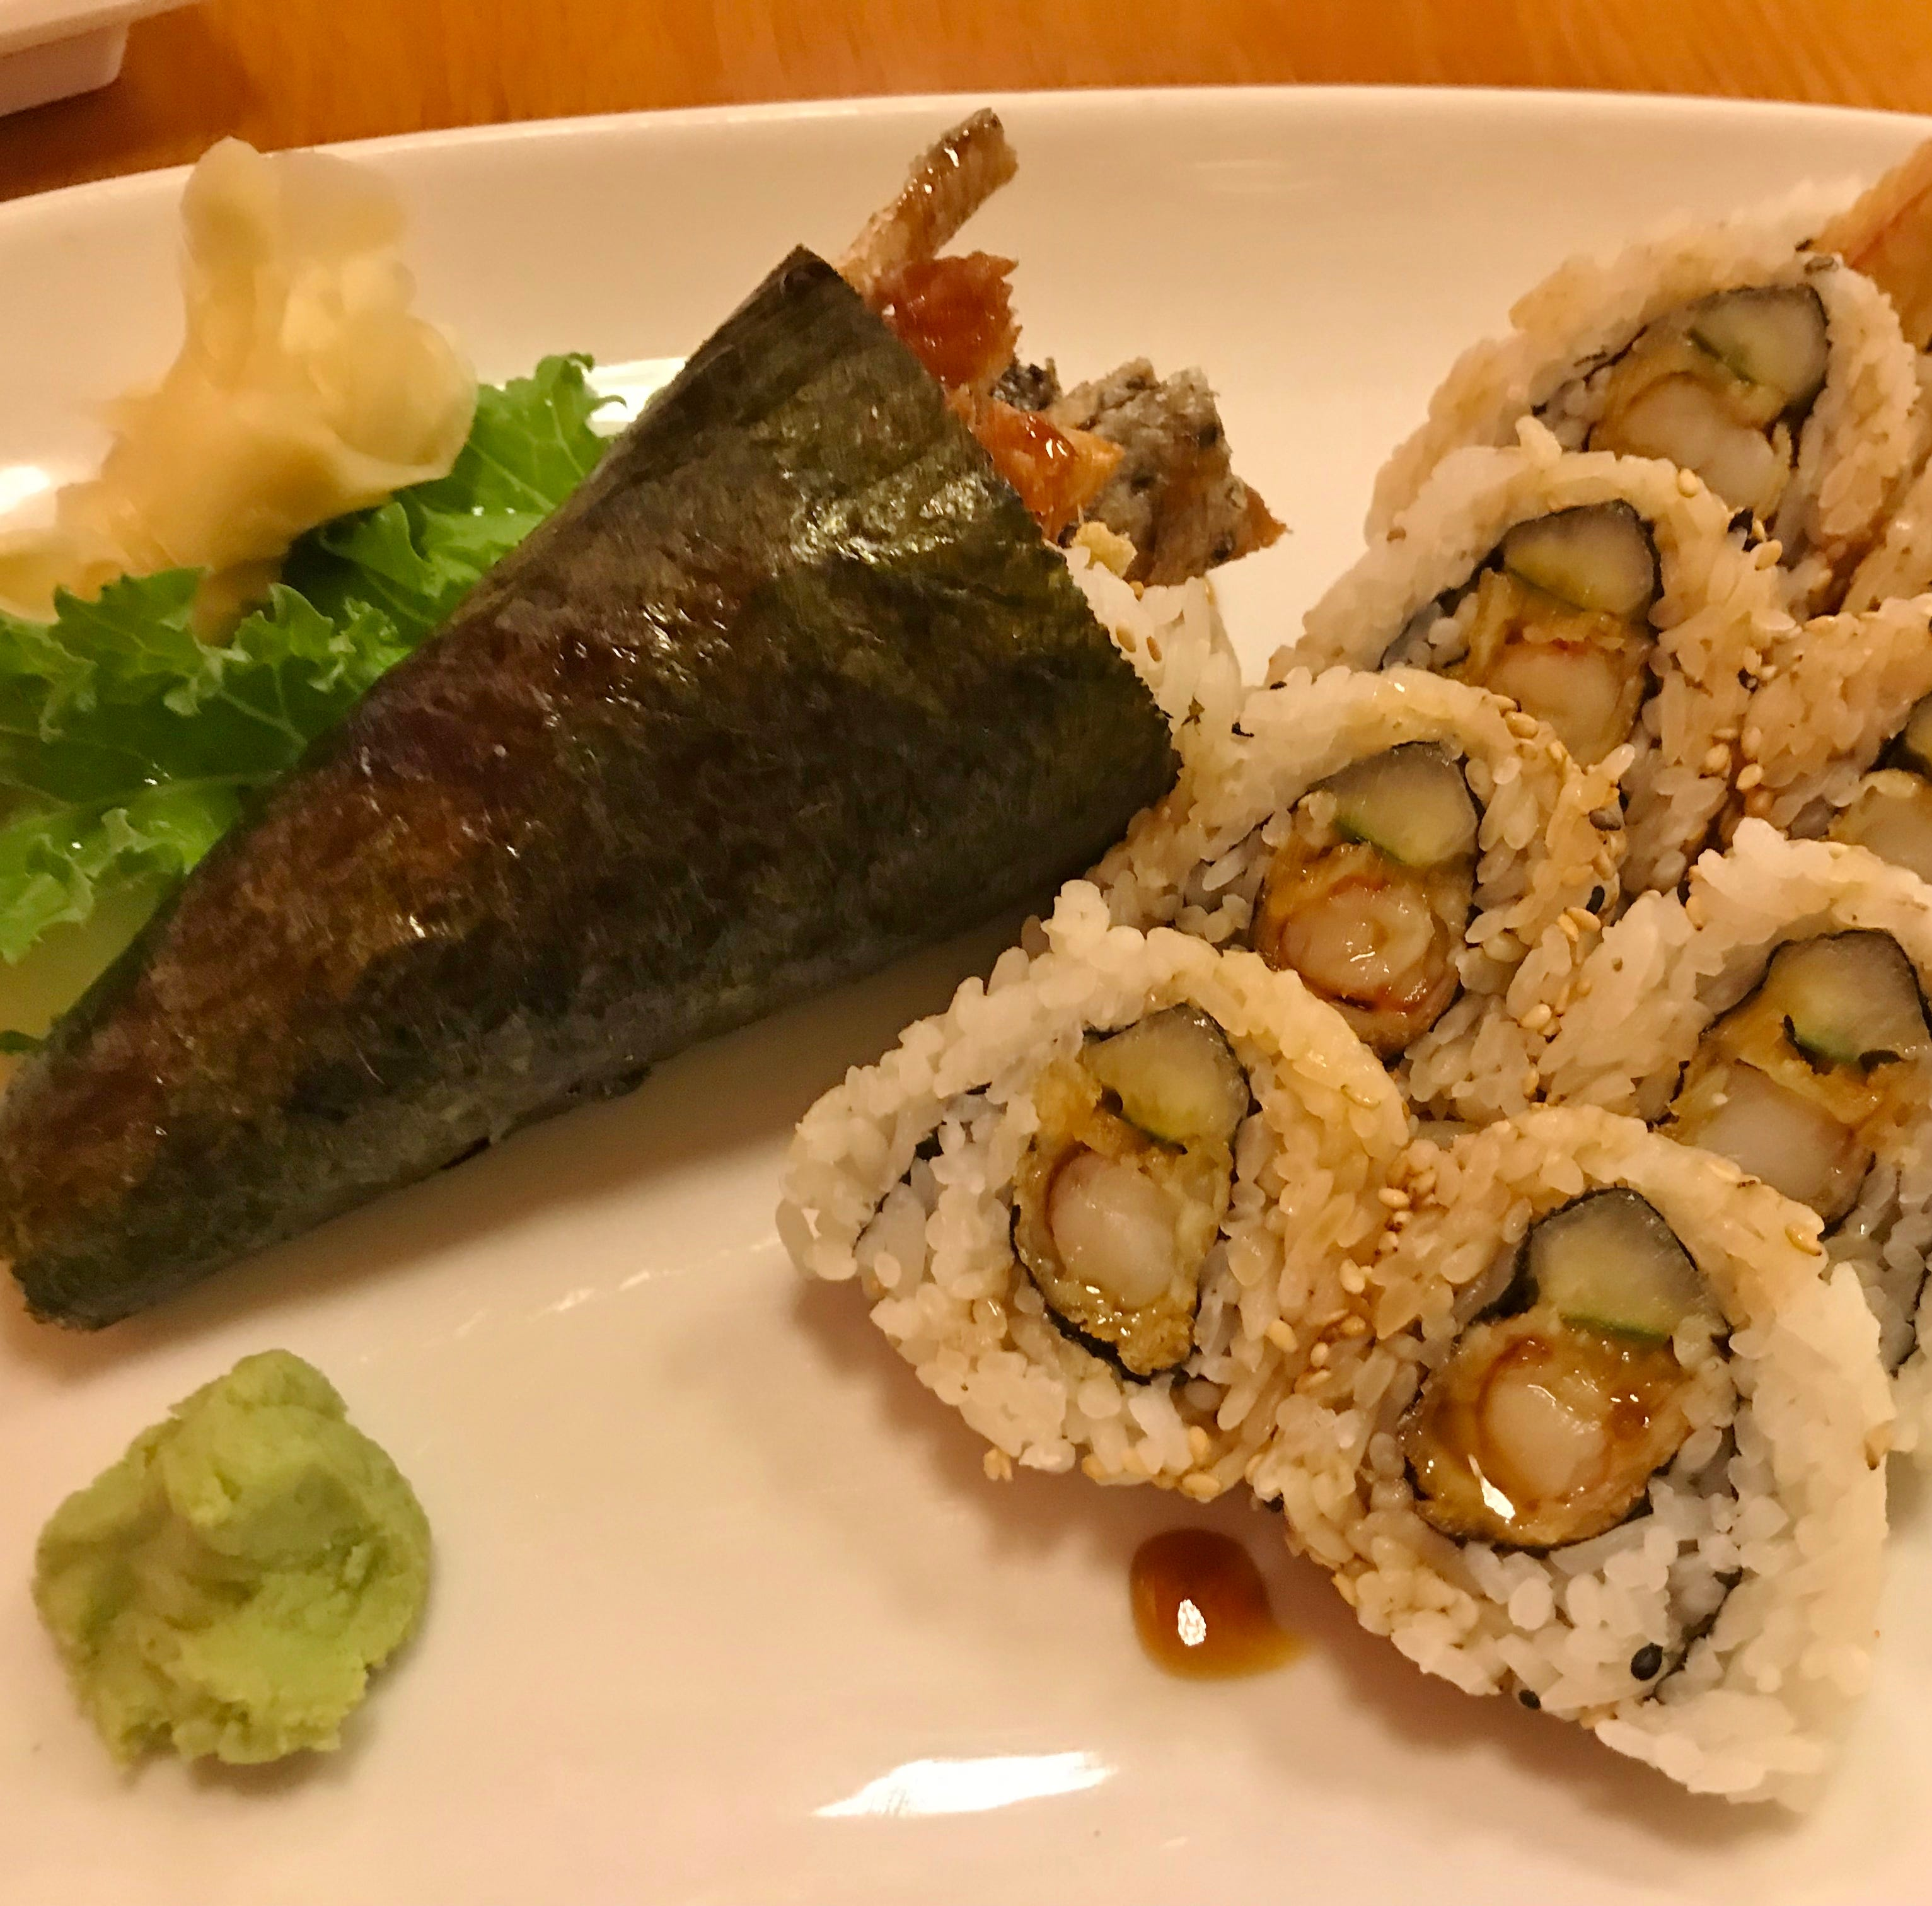 Restaurant review: Sake Too a welcome addition to Tradition Square in Port St. Lucie